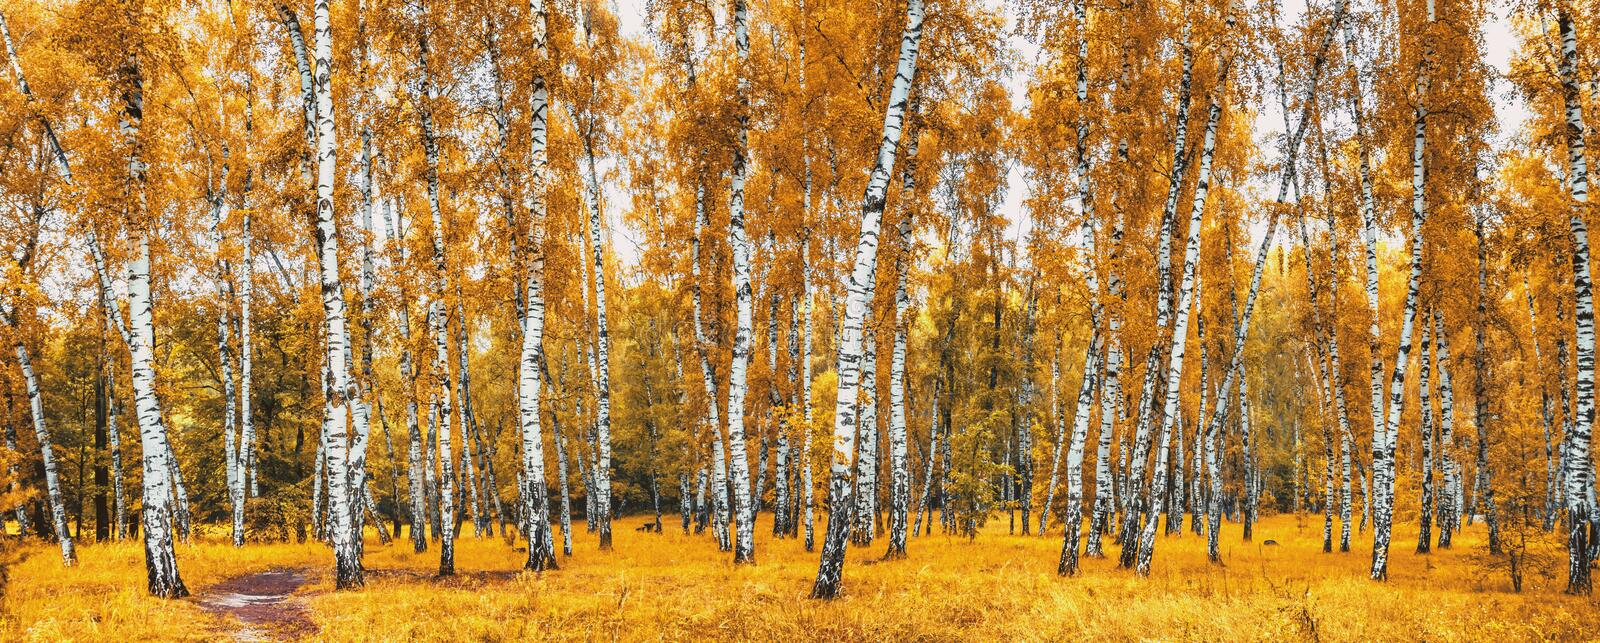 Birch grove with a road on sunny autumn day royalty free stock images